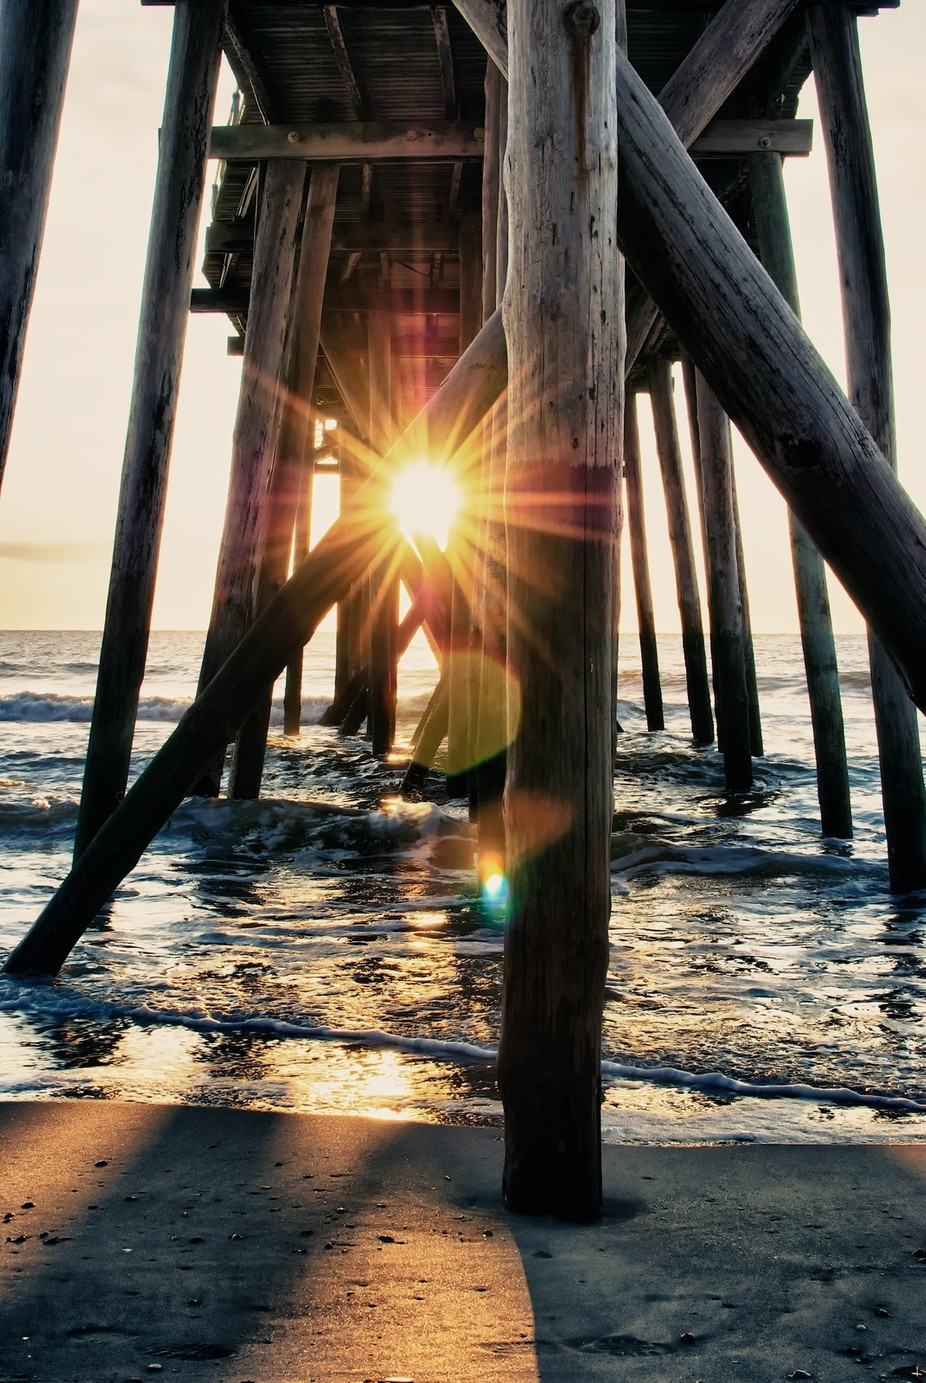 peeking through by mags549 - The View Under The Pier Photo Contest